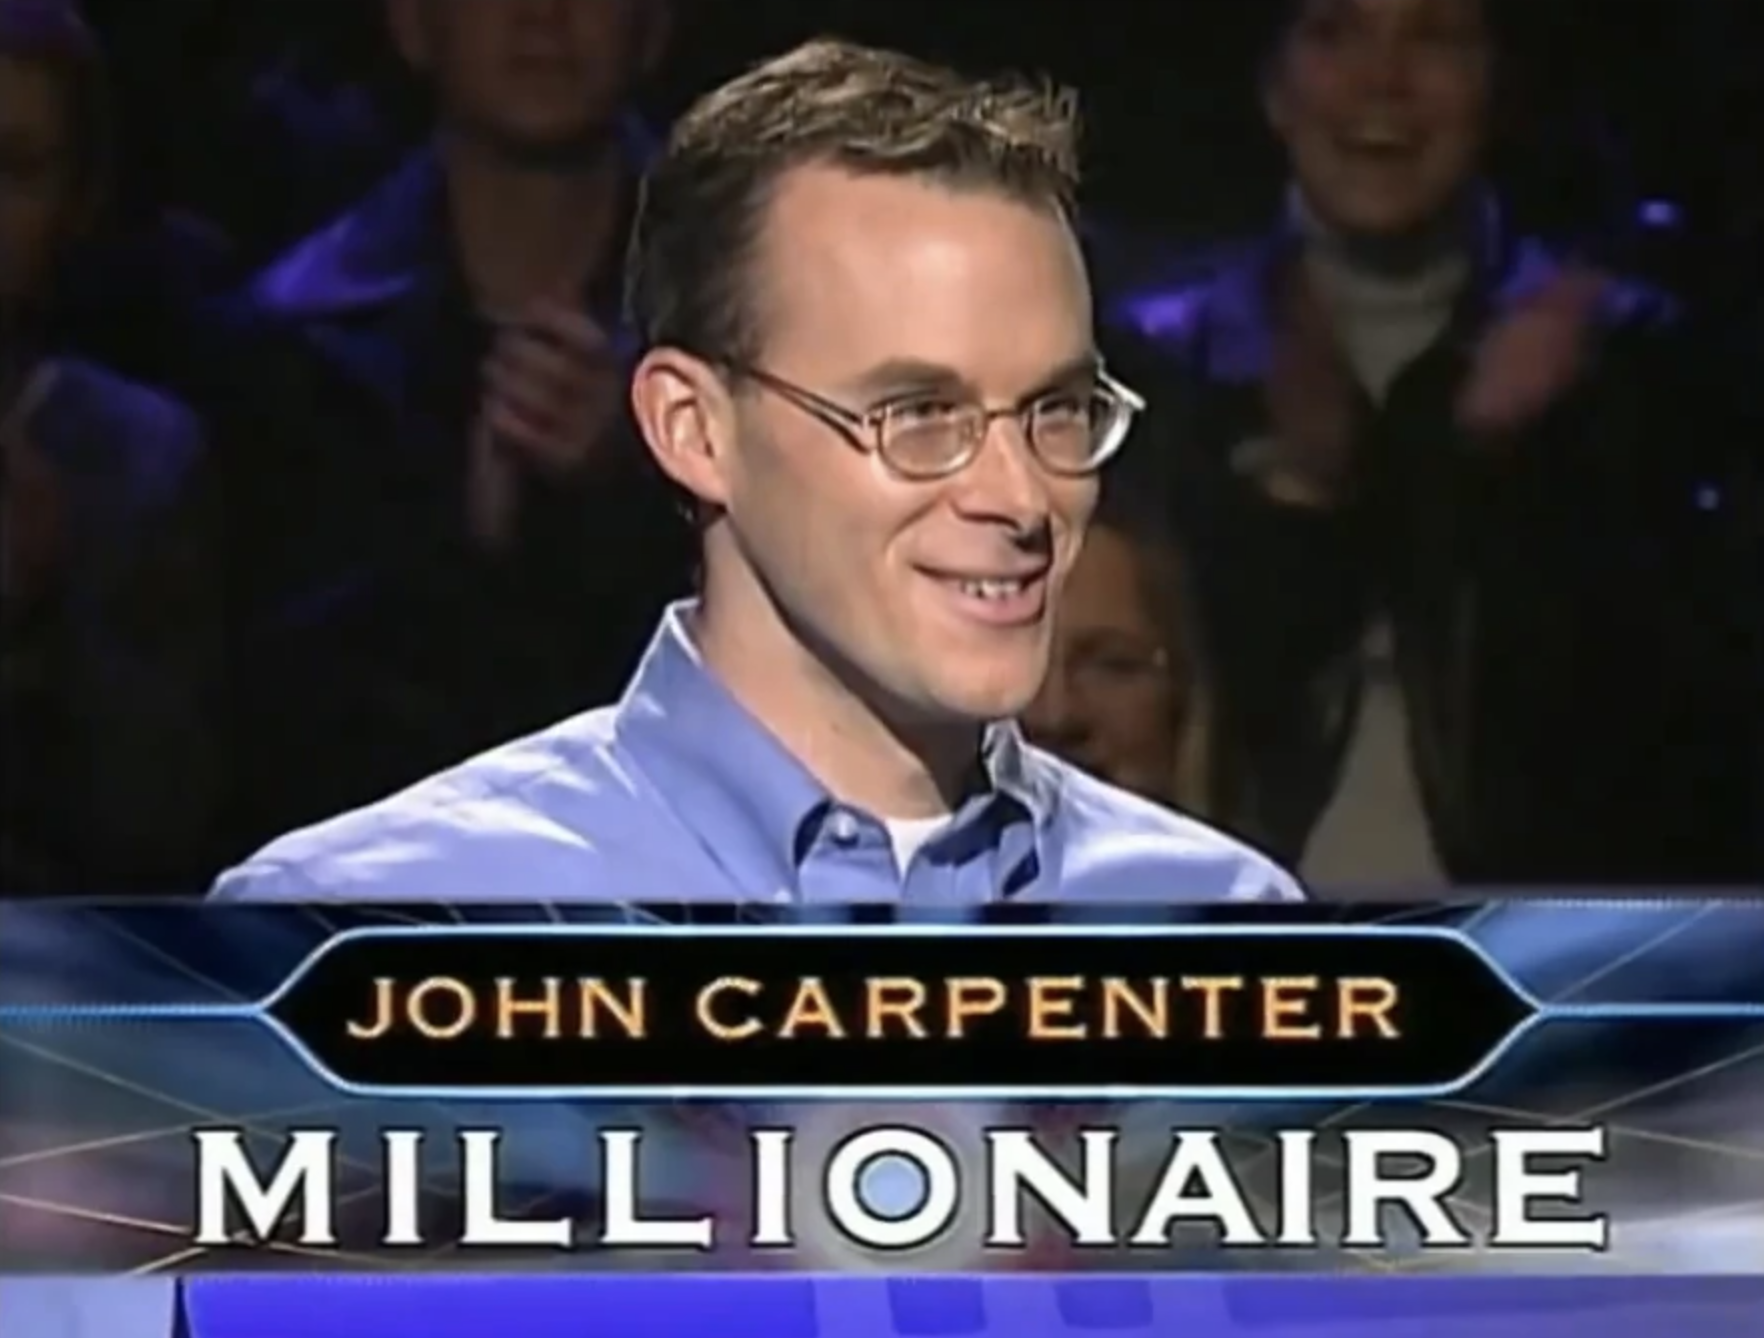 Who wants to be a millionaire website